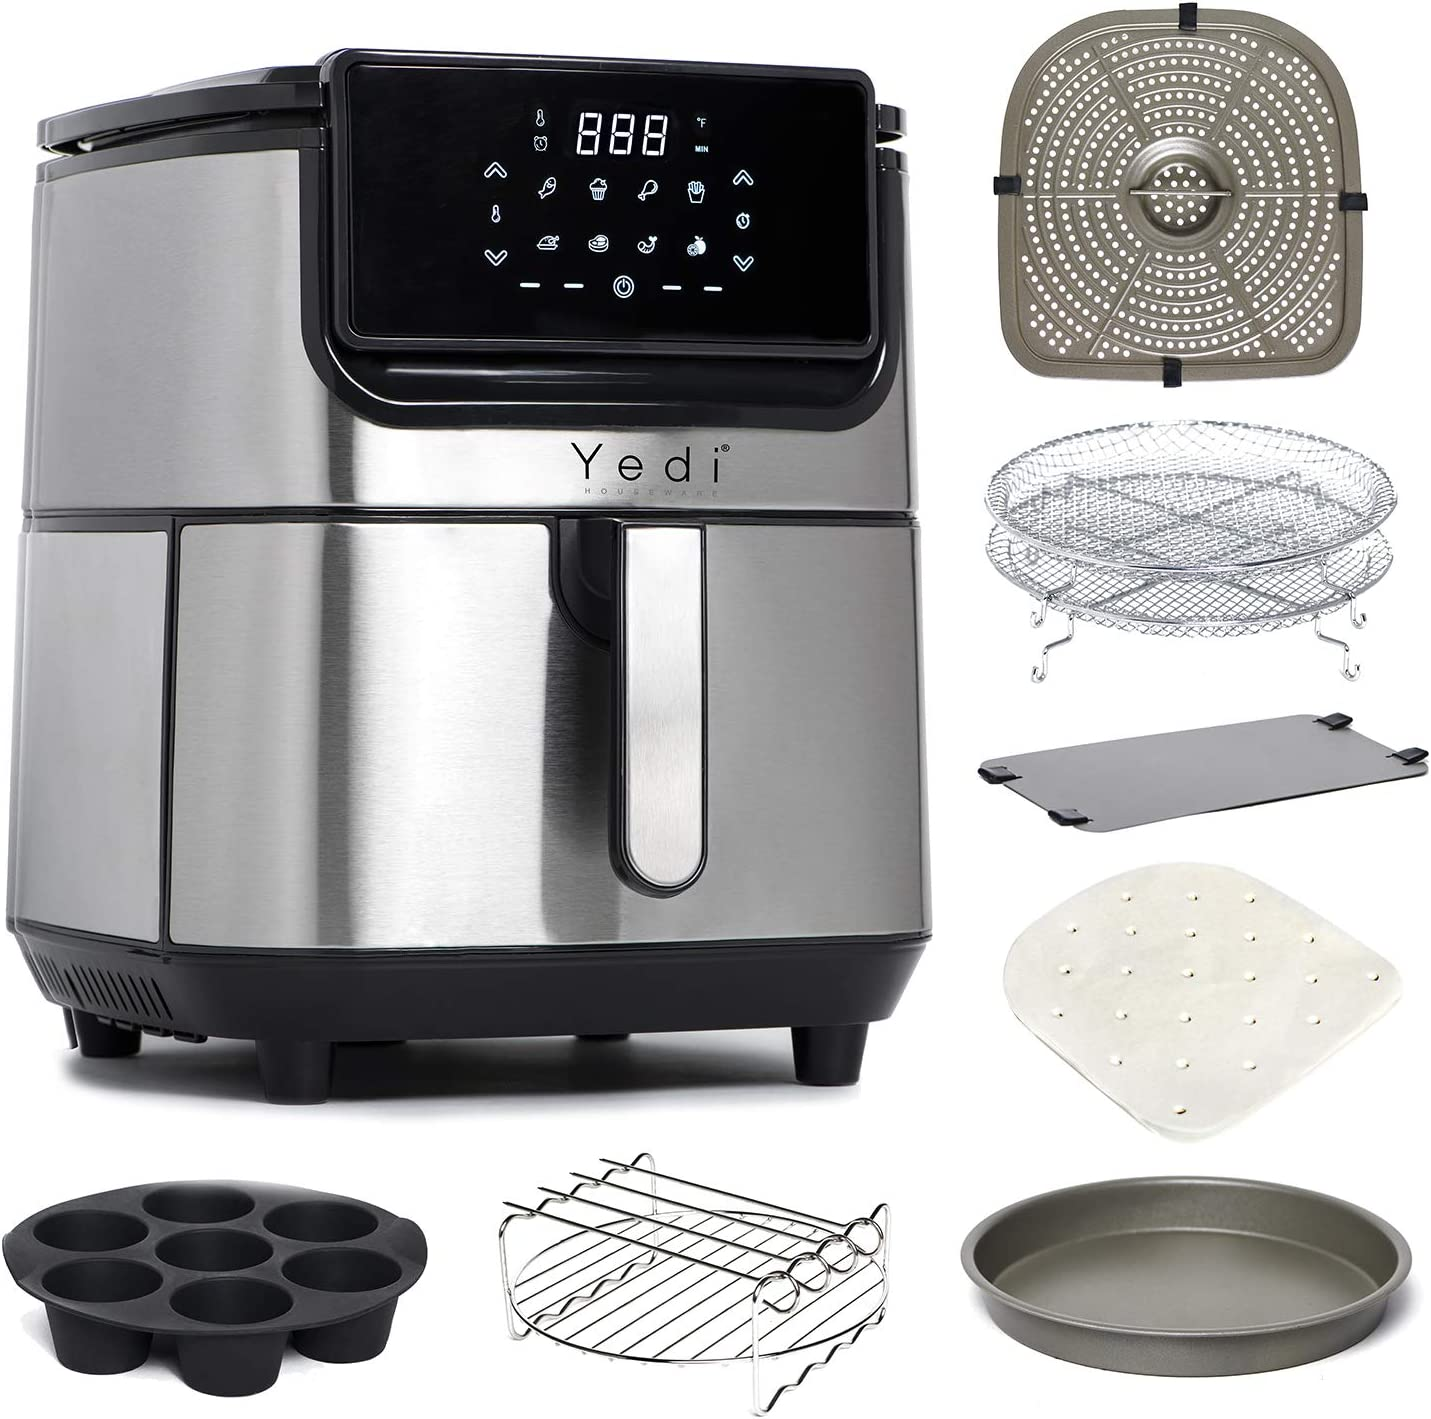 Yedi Evolution Air Fryer, 6.8 Quart, Stainless Steel, Ceramic Cooking Basket, with Deluxe Accessory Kit and Recipe Book